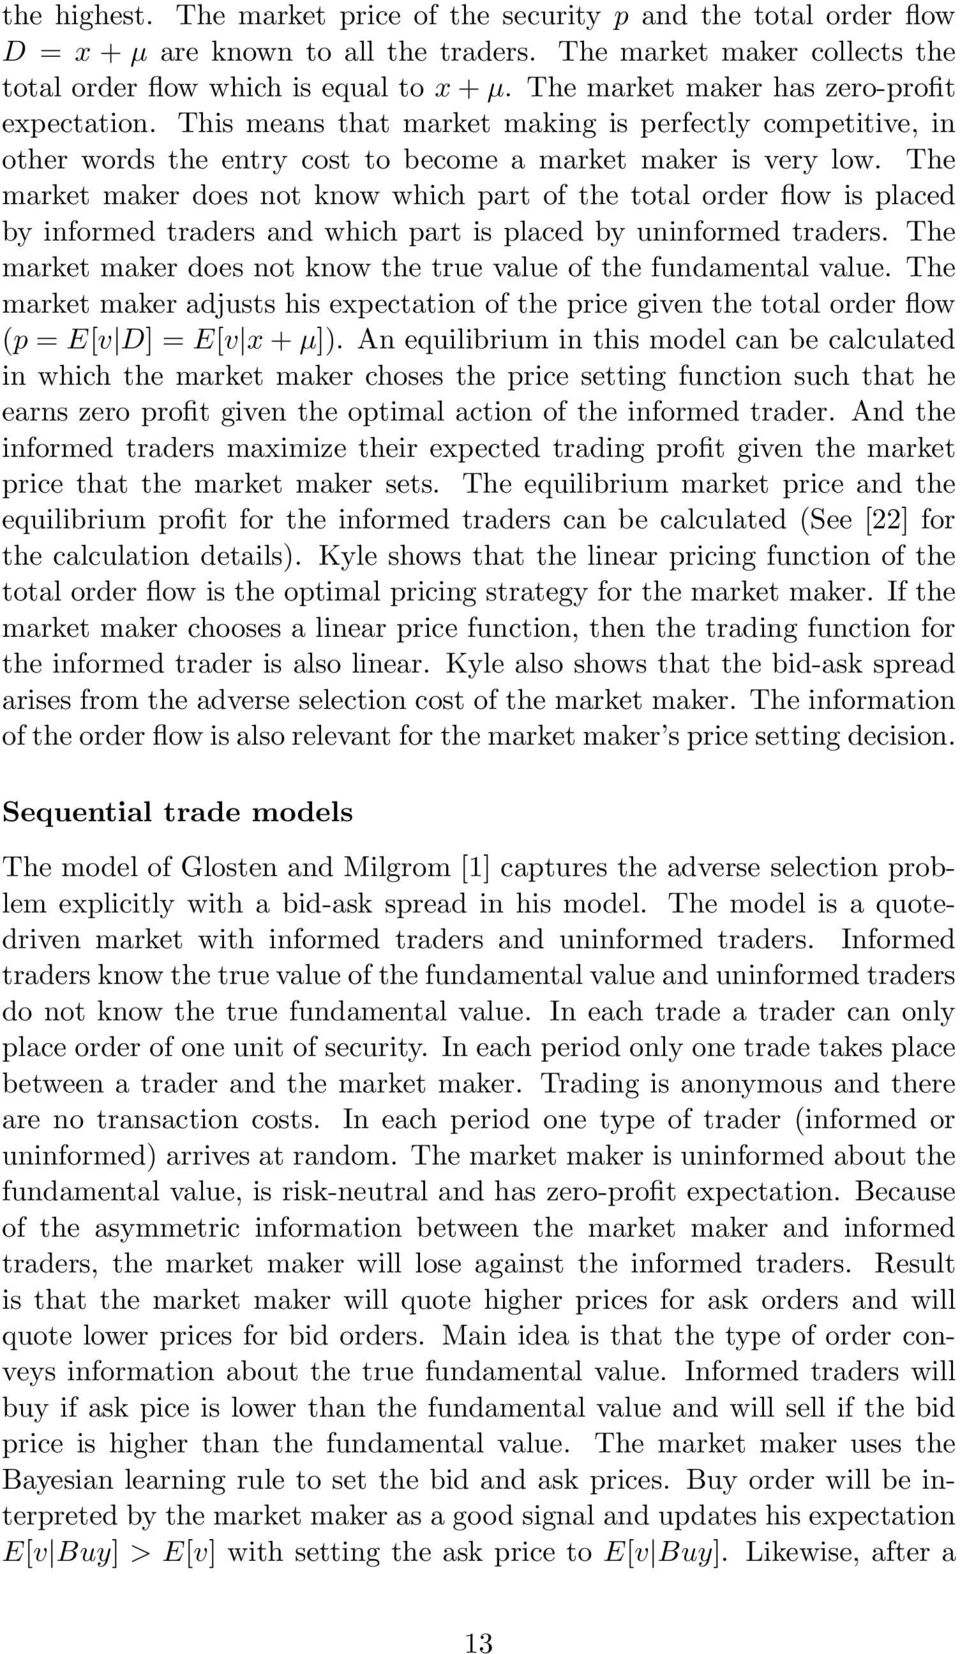 The market maker does not know which part of the total order flow is placed by informed traders and which part is placed by uninformed traders.